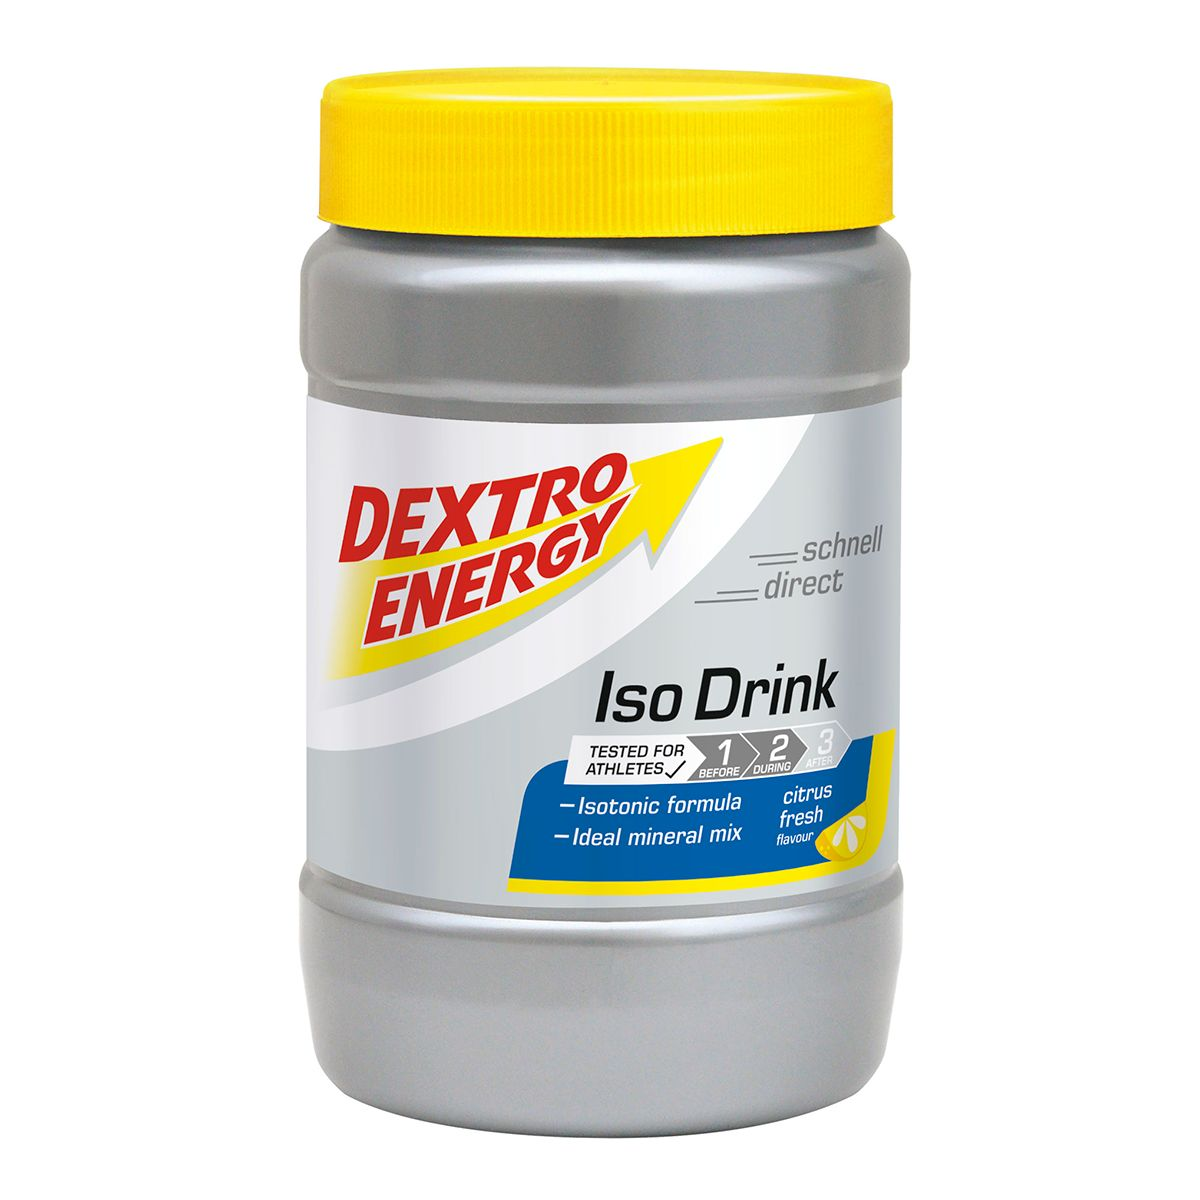 iso drink powder